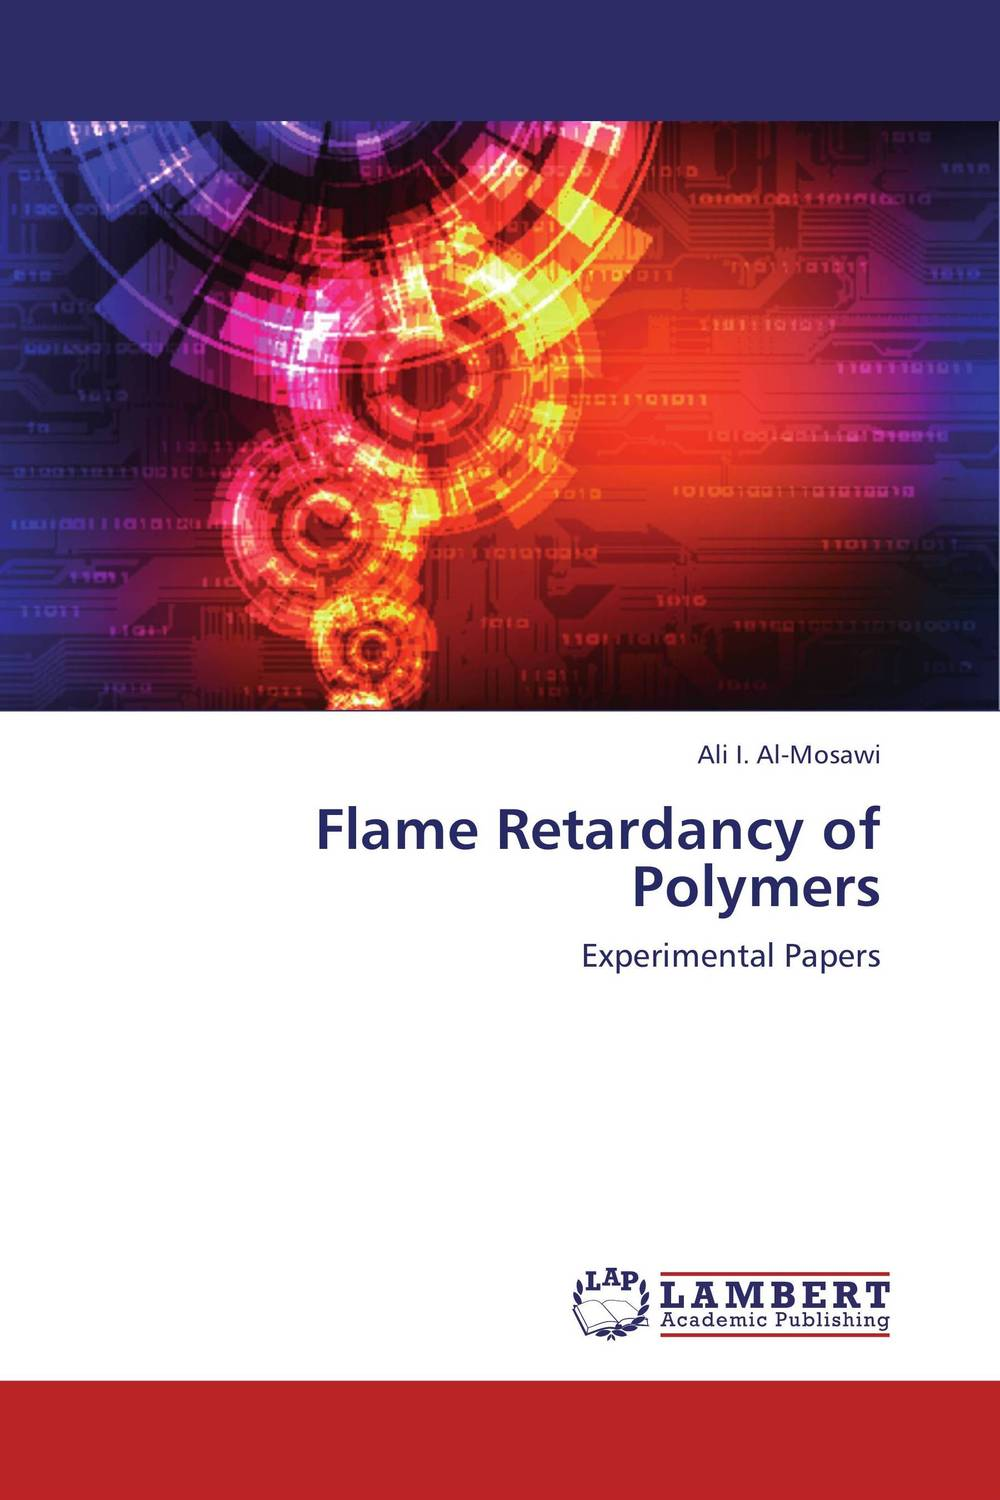 Flame Retardancy of Polymers johannes fink karl a concise introduction to additives for thermoplastic polymers